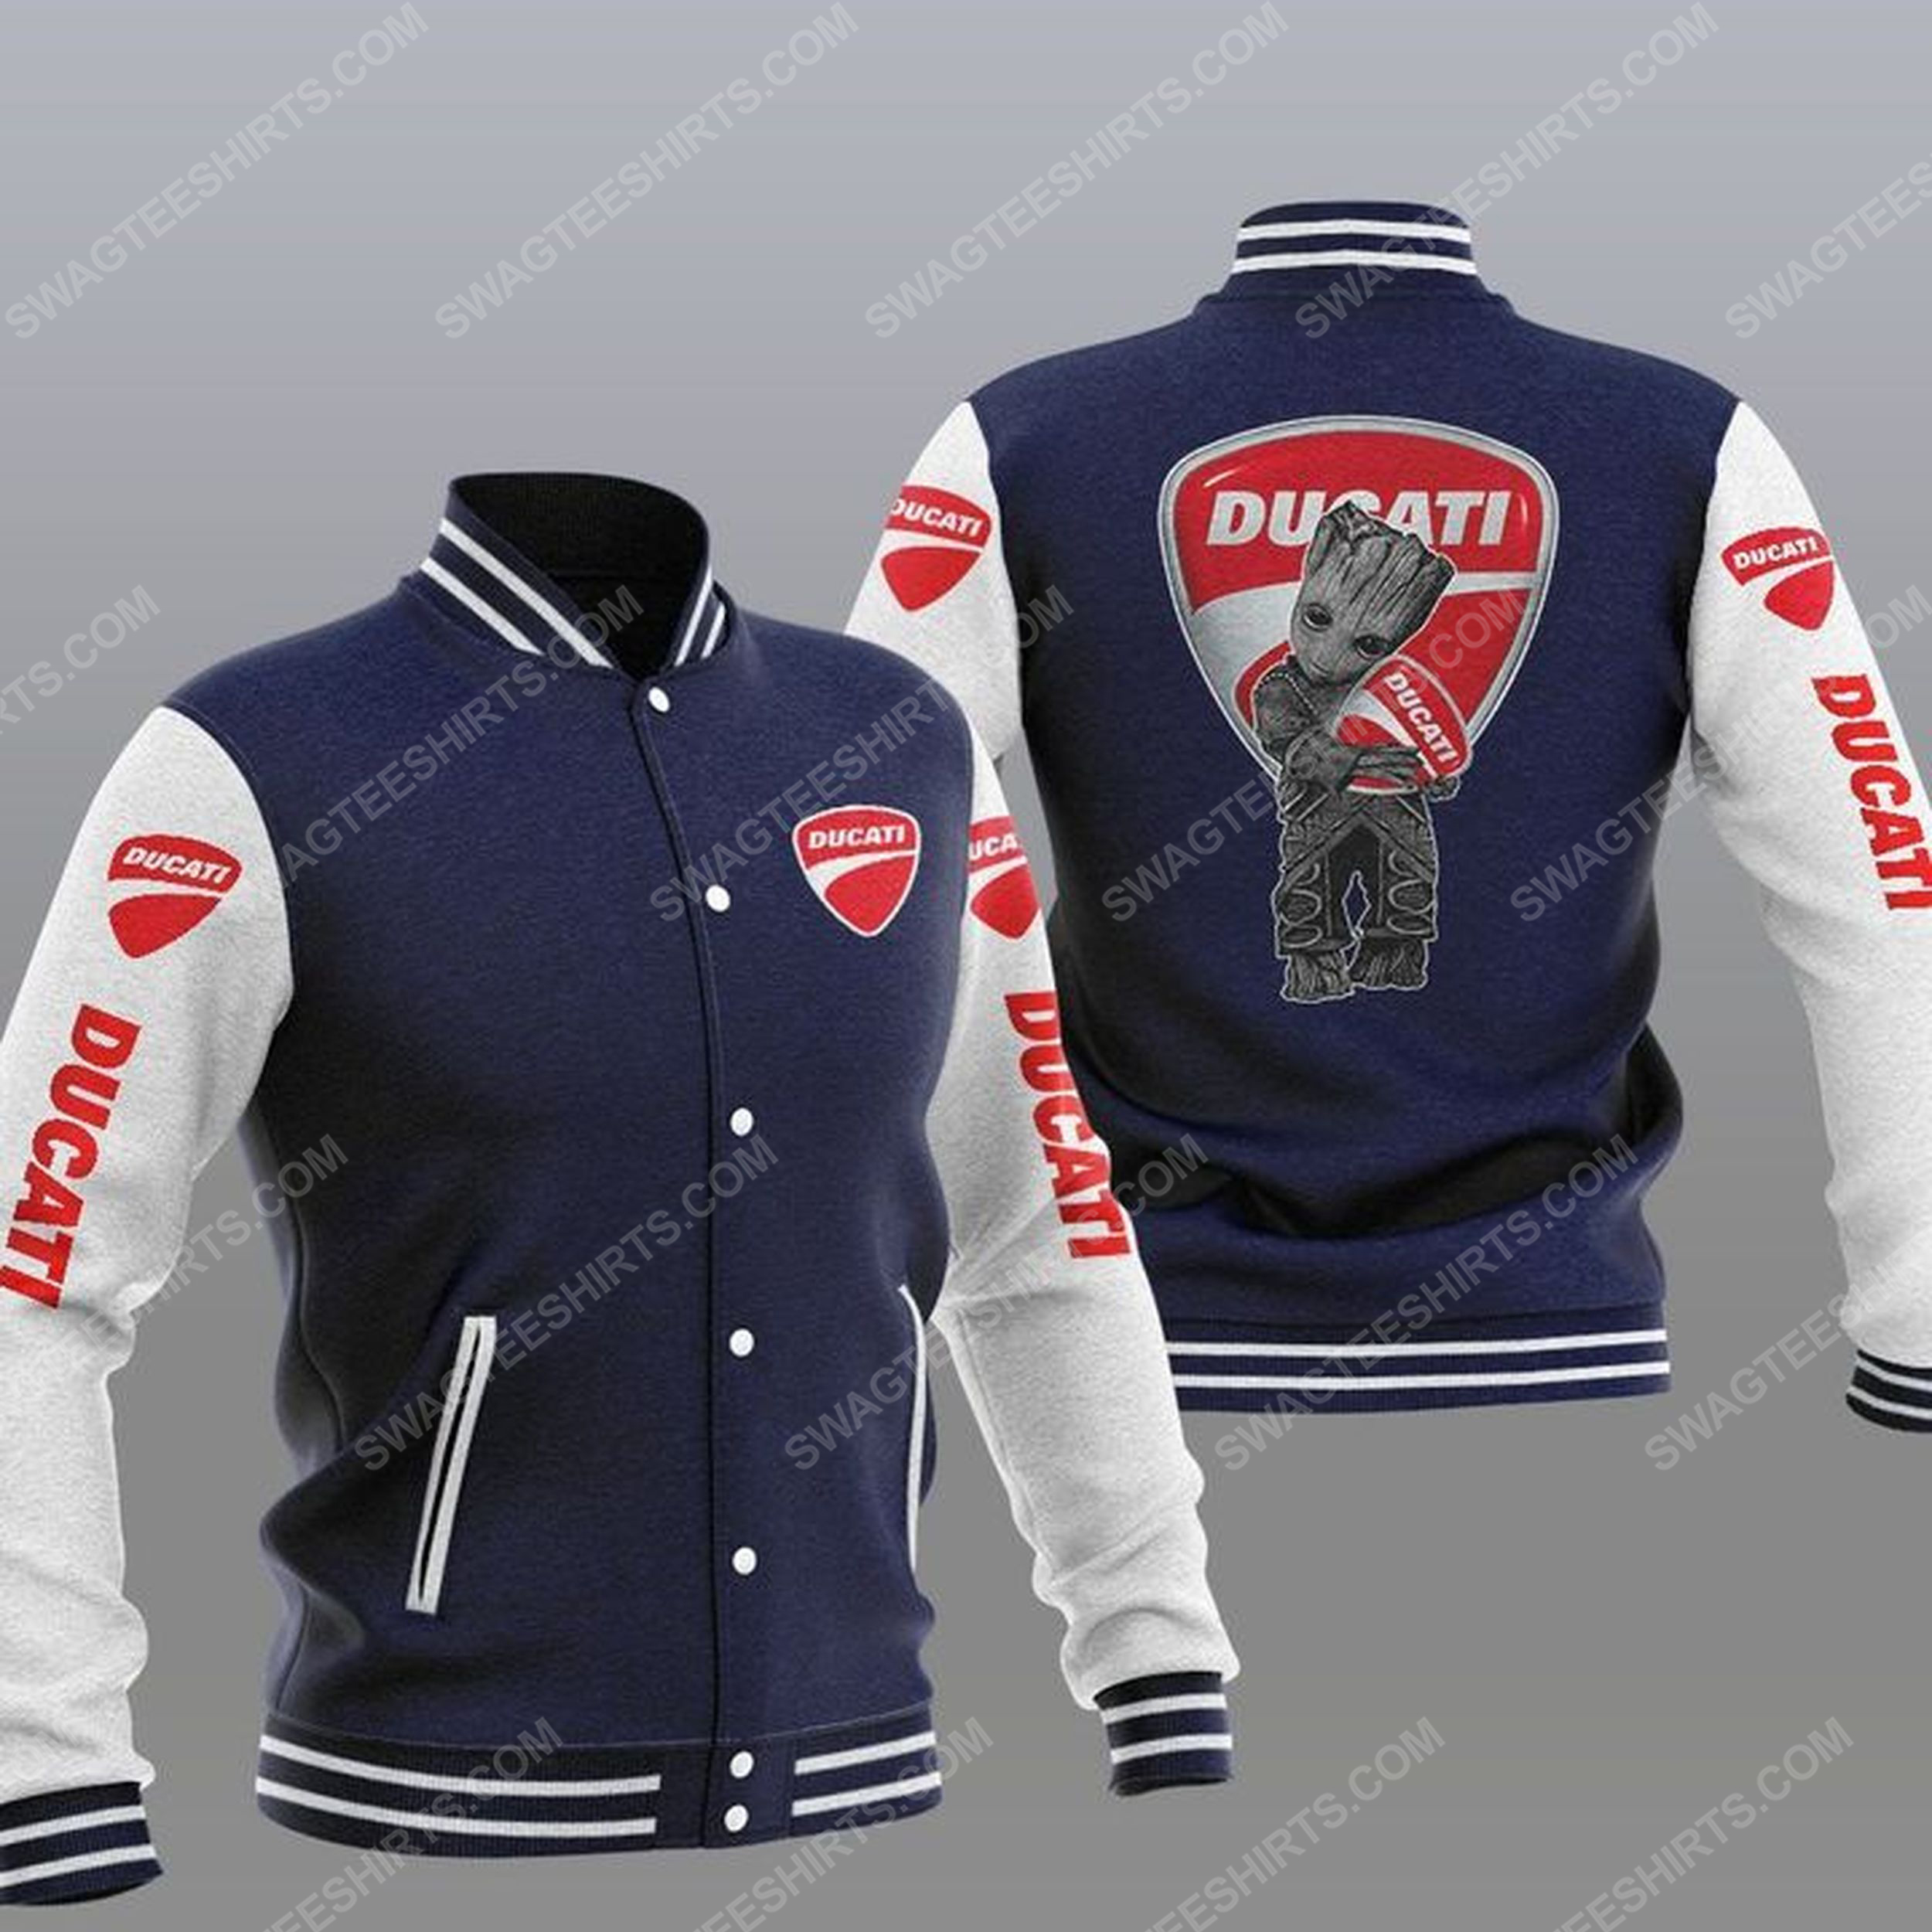 Baby groot and ducati all over print baseball jacket - navy 1